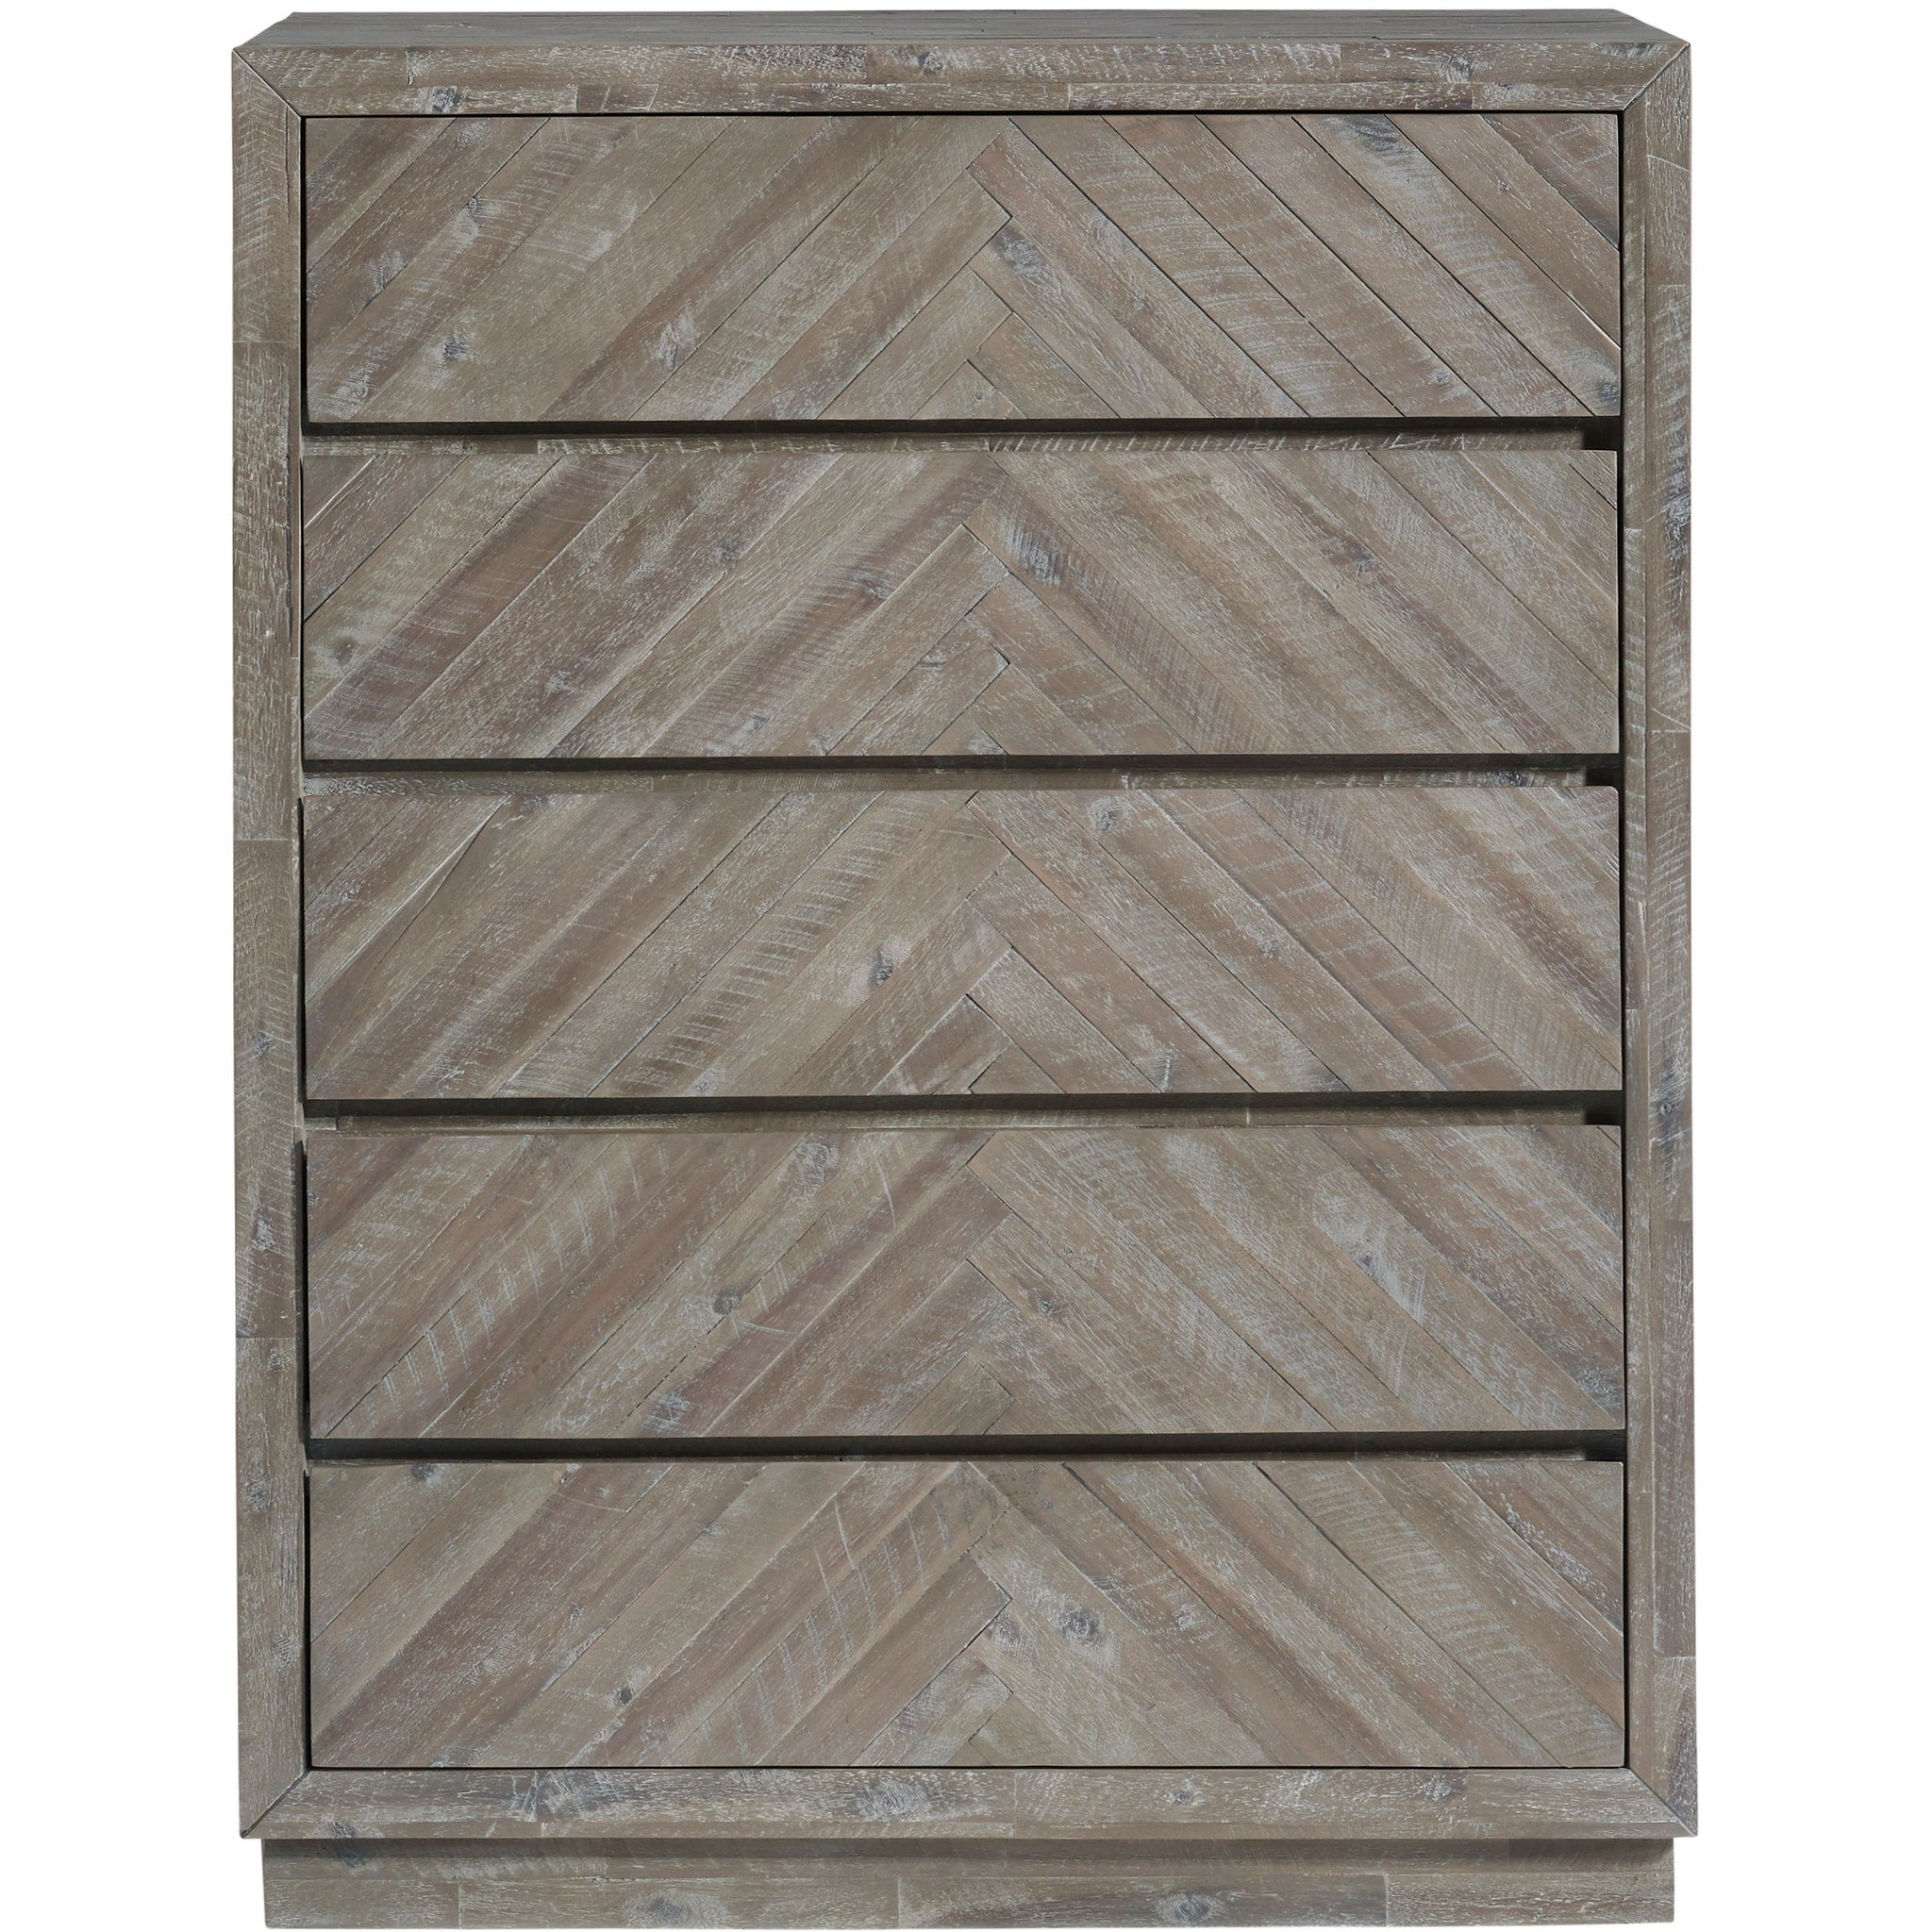 Herringbone Solid Wood 5 Drawer Chest in Rustic Latte